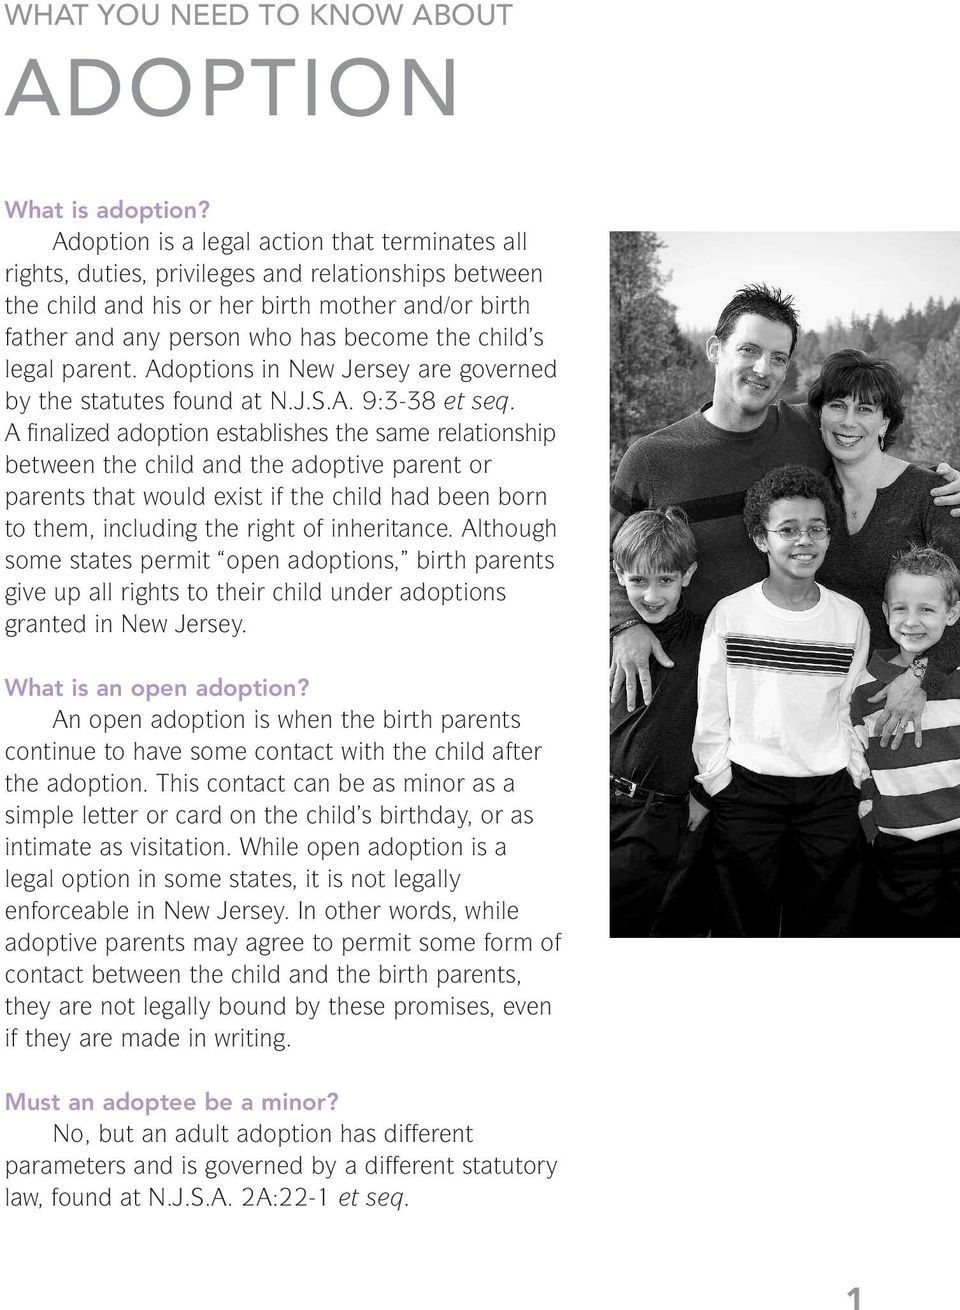 legal parent. Adoptions in New Jersey are governed by the statutes found at N.J.S.A. 9:3-38 et seq.